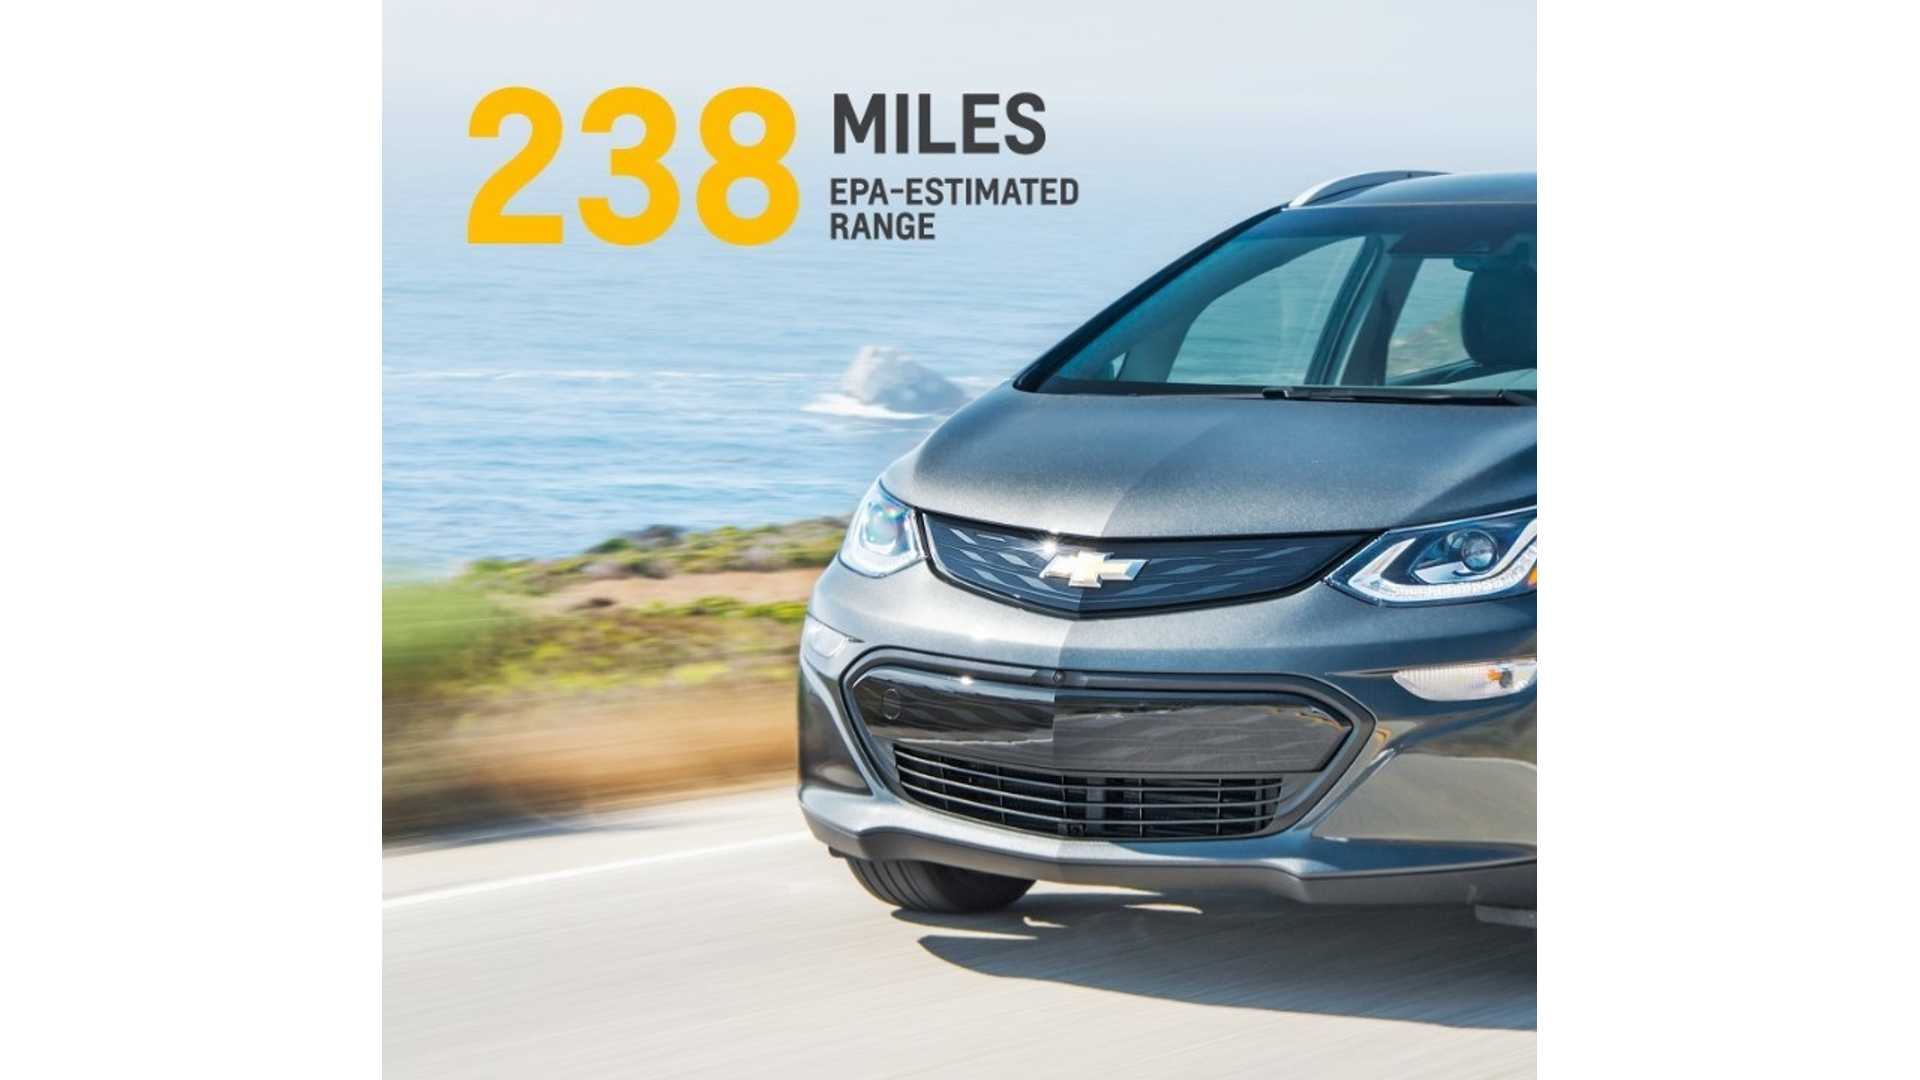 Chevrolet Bolt Ev Rated 238 Miles Of All Electric Range Arrives This Year